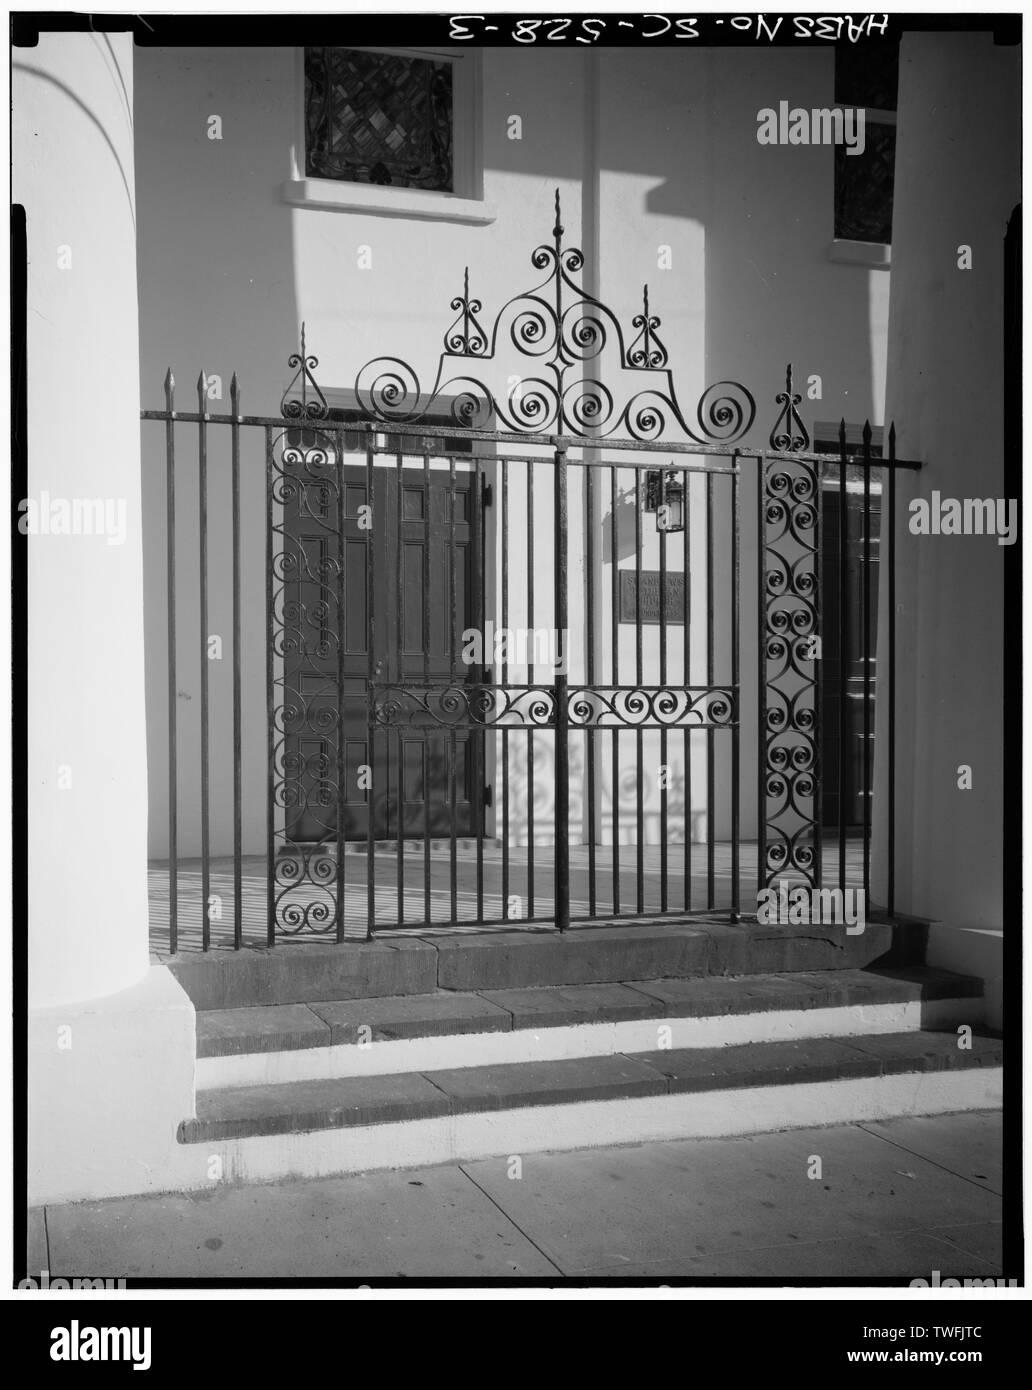 PORTICO GATE TO NORTH (FRONT) SIDE OF BUILDING - St. Johannes Lutheran Church, 48 Hasell Street, Charleston, Charleston County, SC - Stock Image